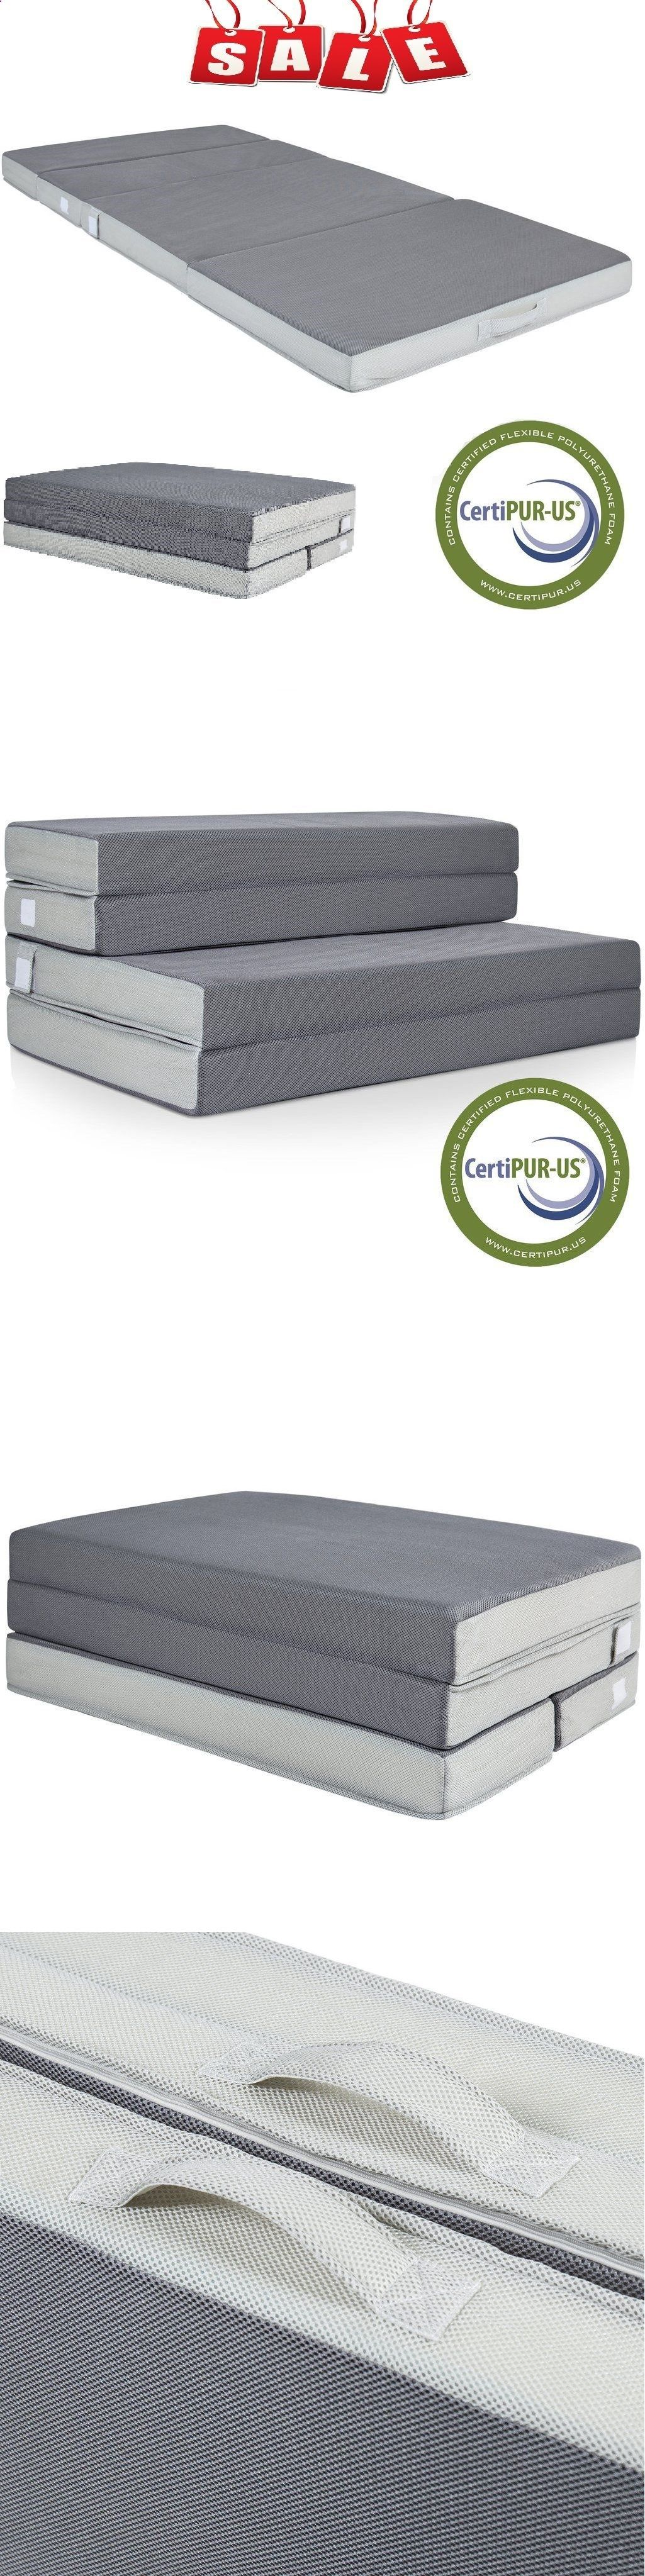 camping sleeping pad mattresses and pads 36114 kamp rite self